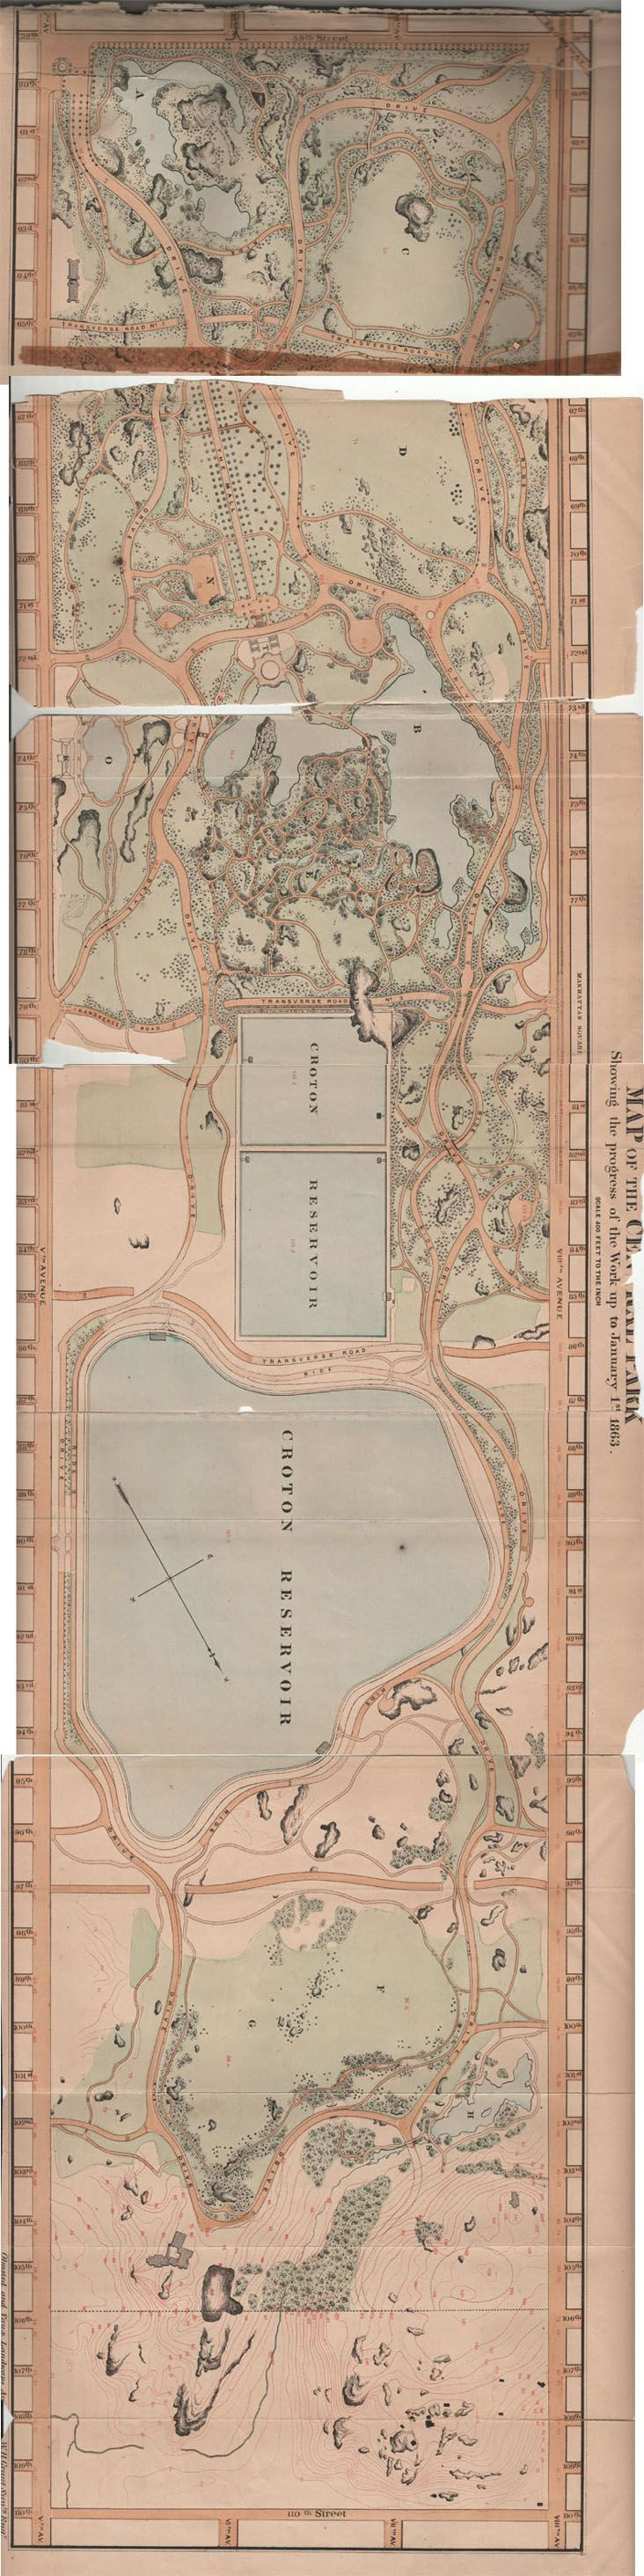 Map of the Central Park Showing Progress of the Work up to January 1st 1863, Central Park, Manhattan